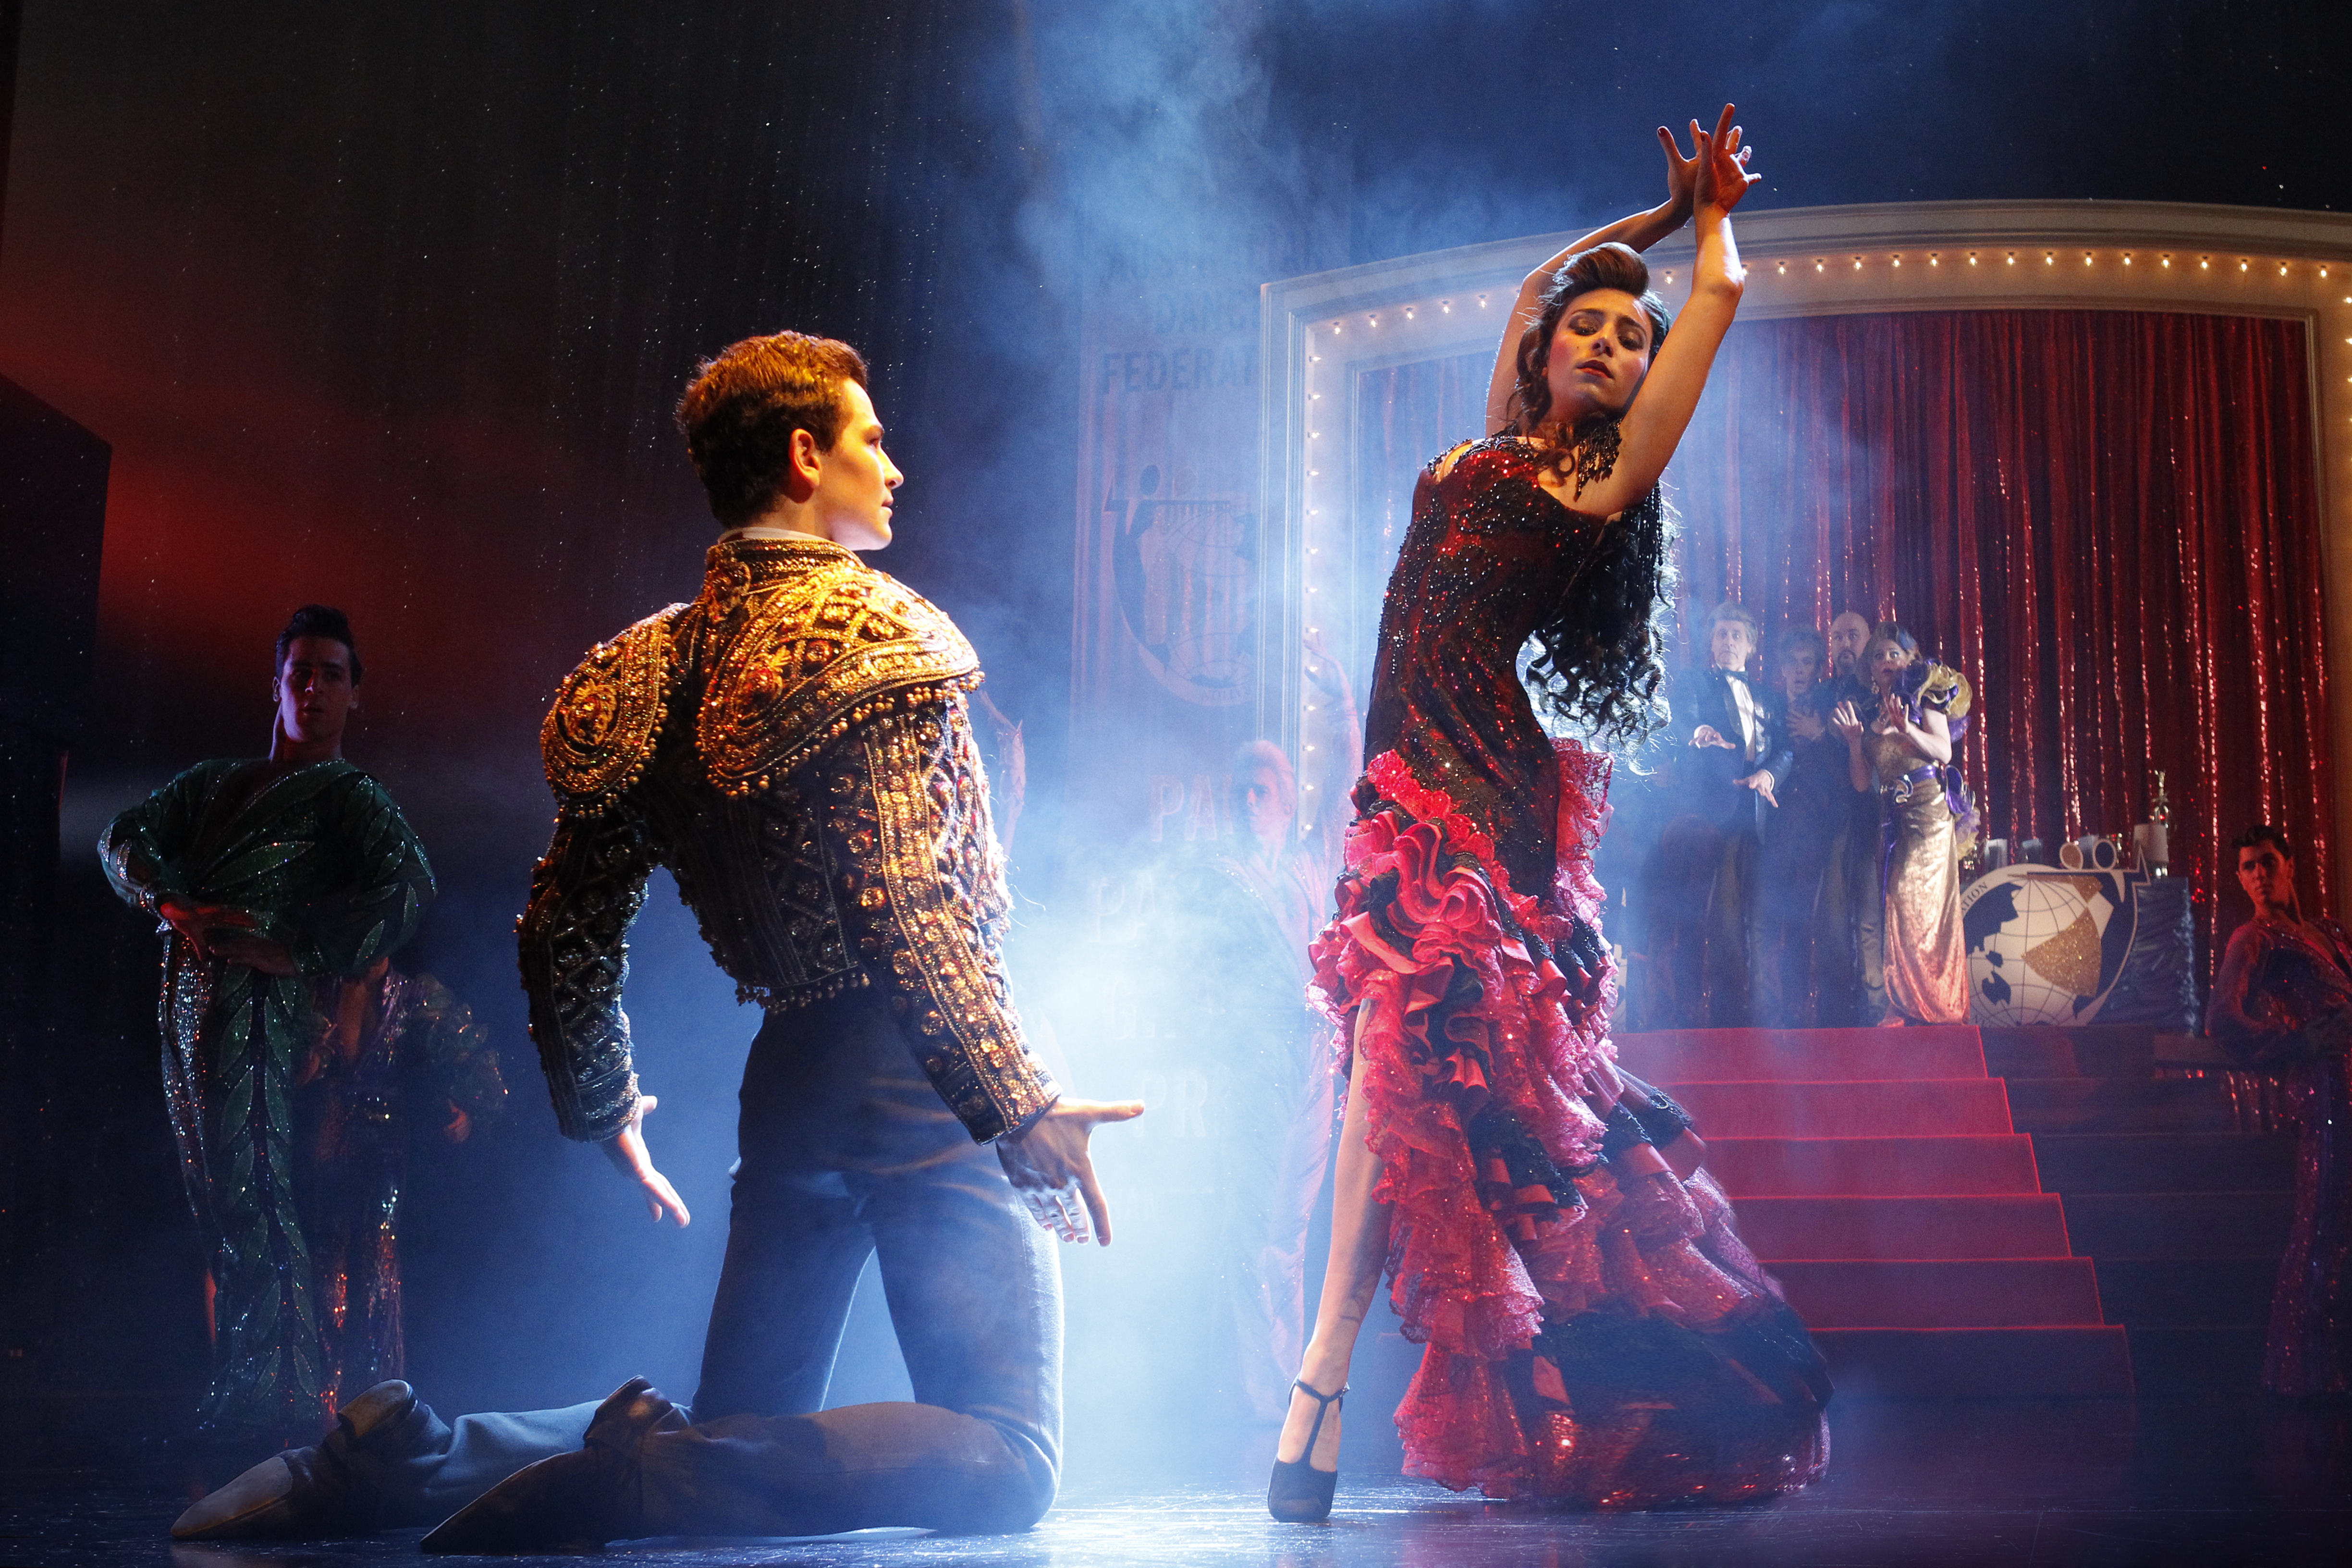 strictly ballroom essay fran Education outreach program screening: strictly ballroom director: baz   respond to the screening with a one-page essay essays  quiet beginning  dancer fran, however, encourages scott to dance his own steps, and she  becomes his.